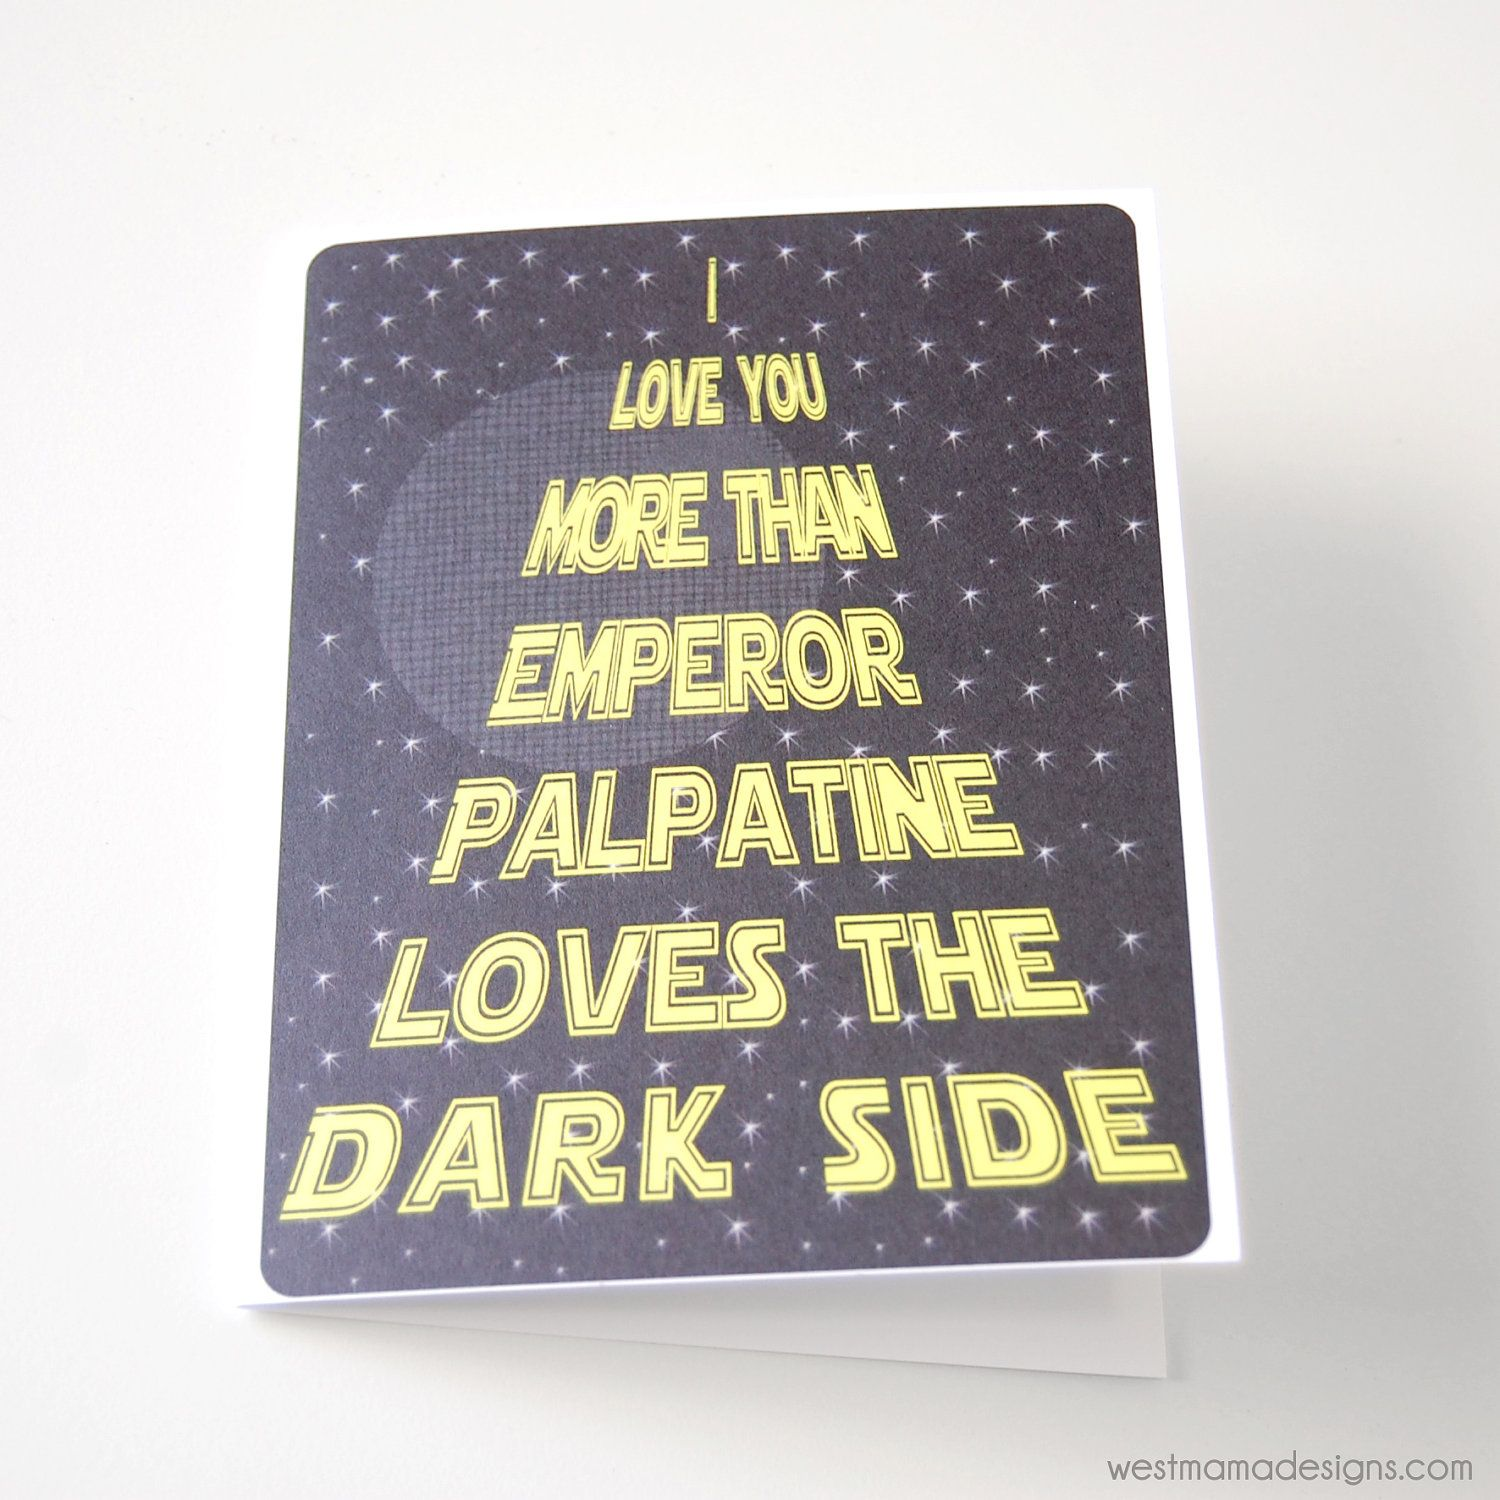 Star wars card funny birthday day card emperor palpatine dark star wars card funny birthday day card emperor palpatine dark side cards bookmarktalkfo Choice Image